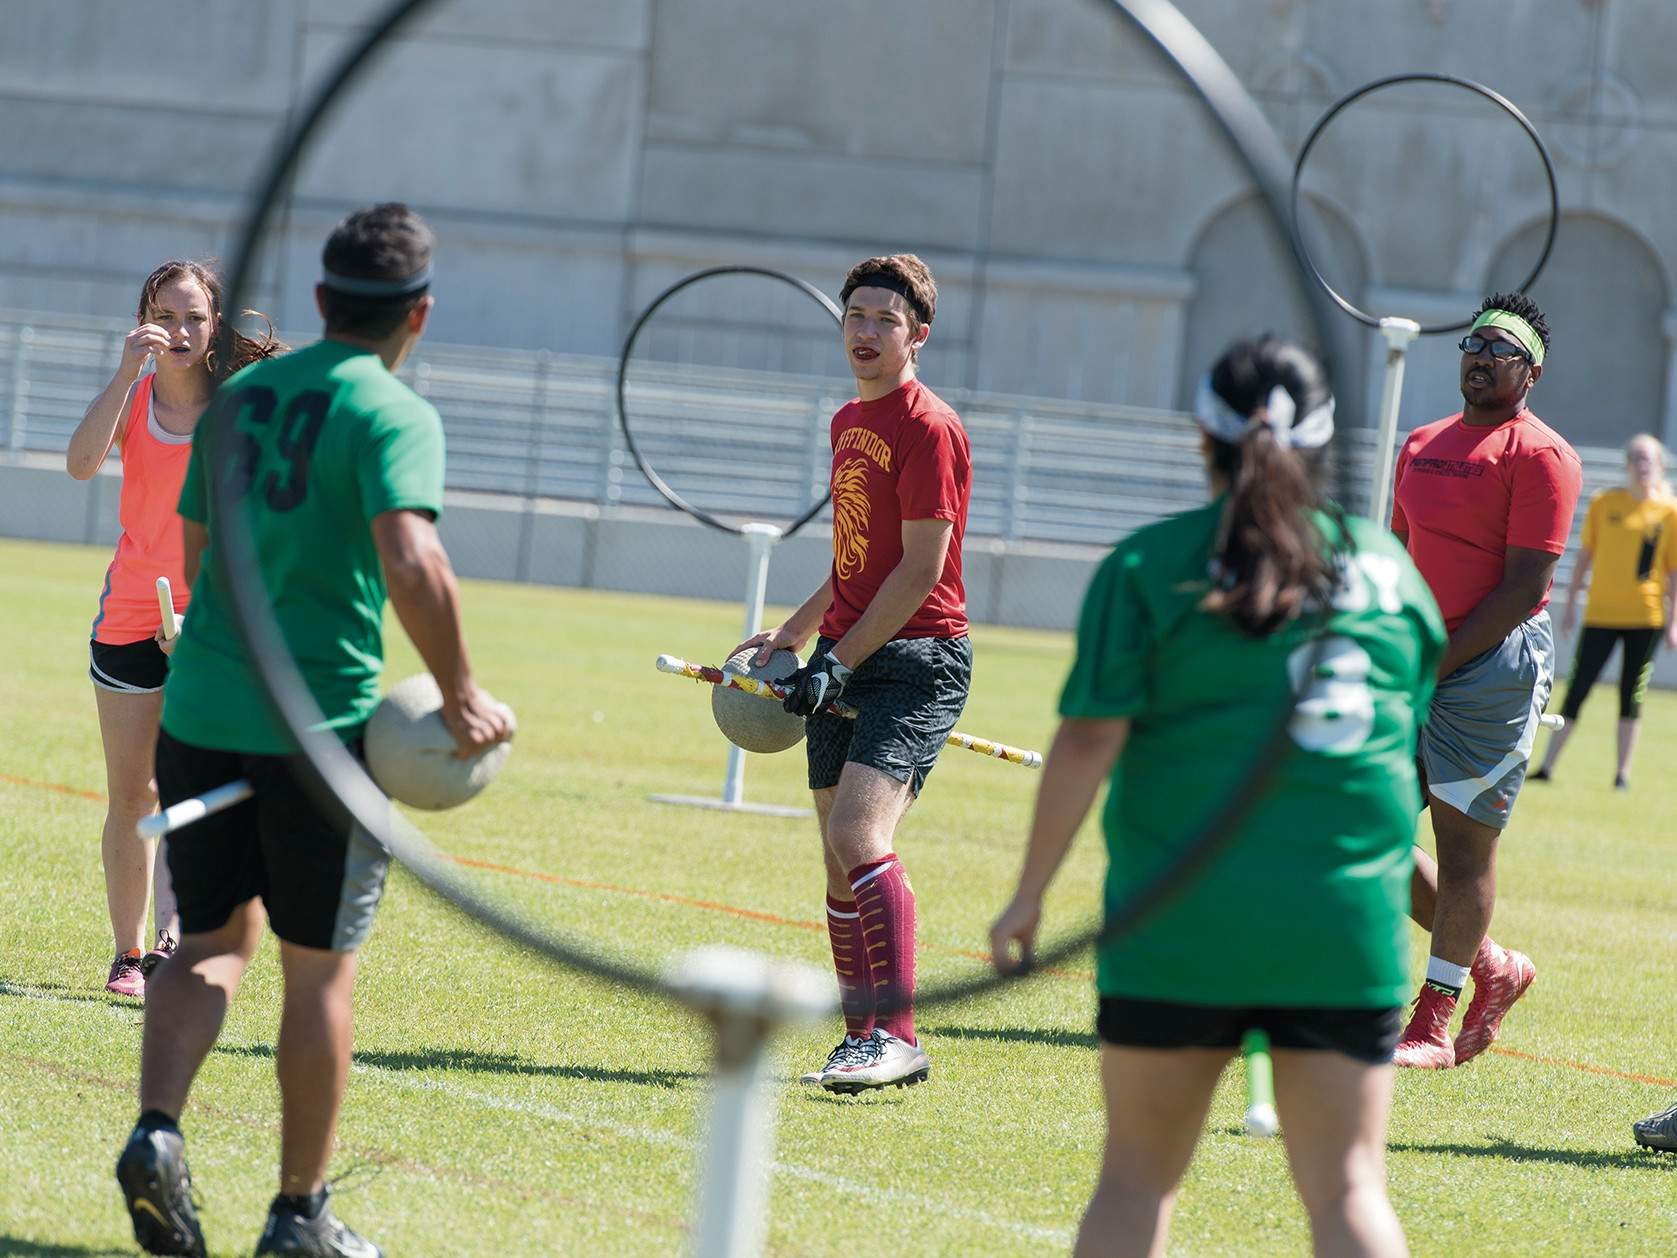 Bobcats playing Quidditch